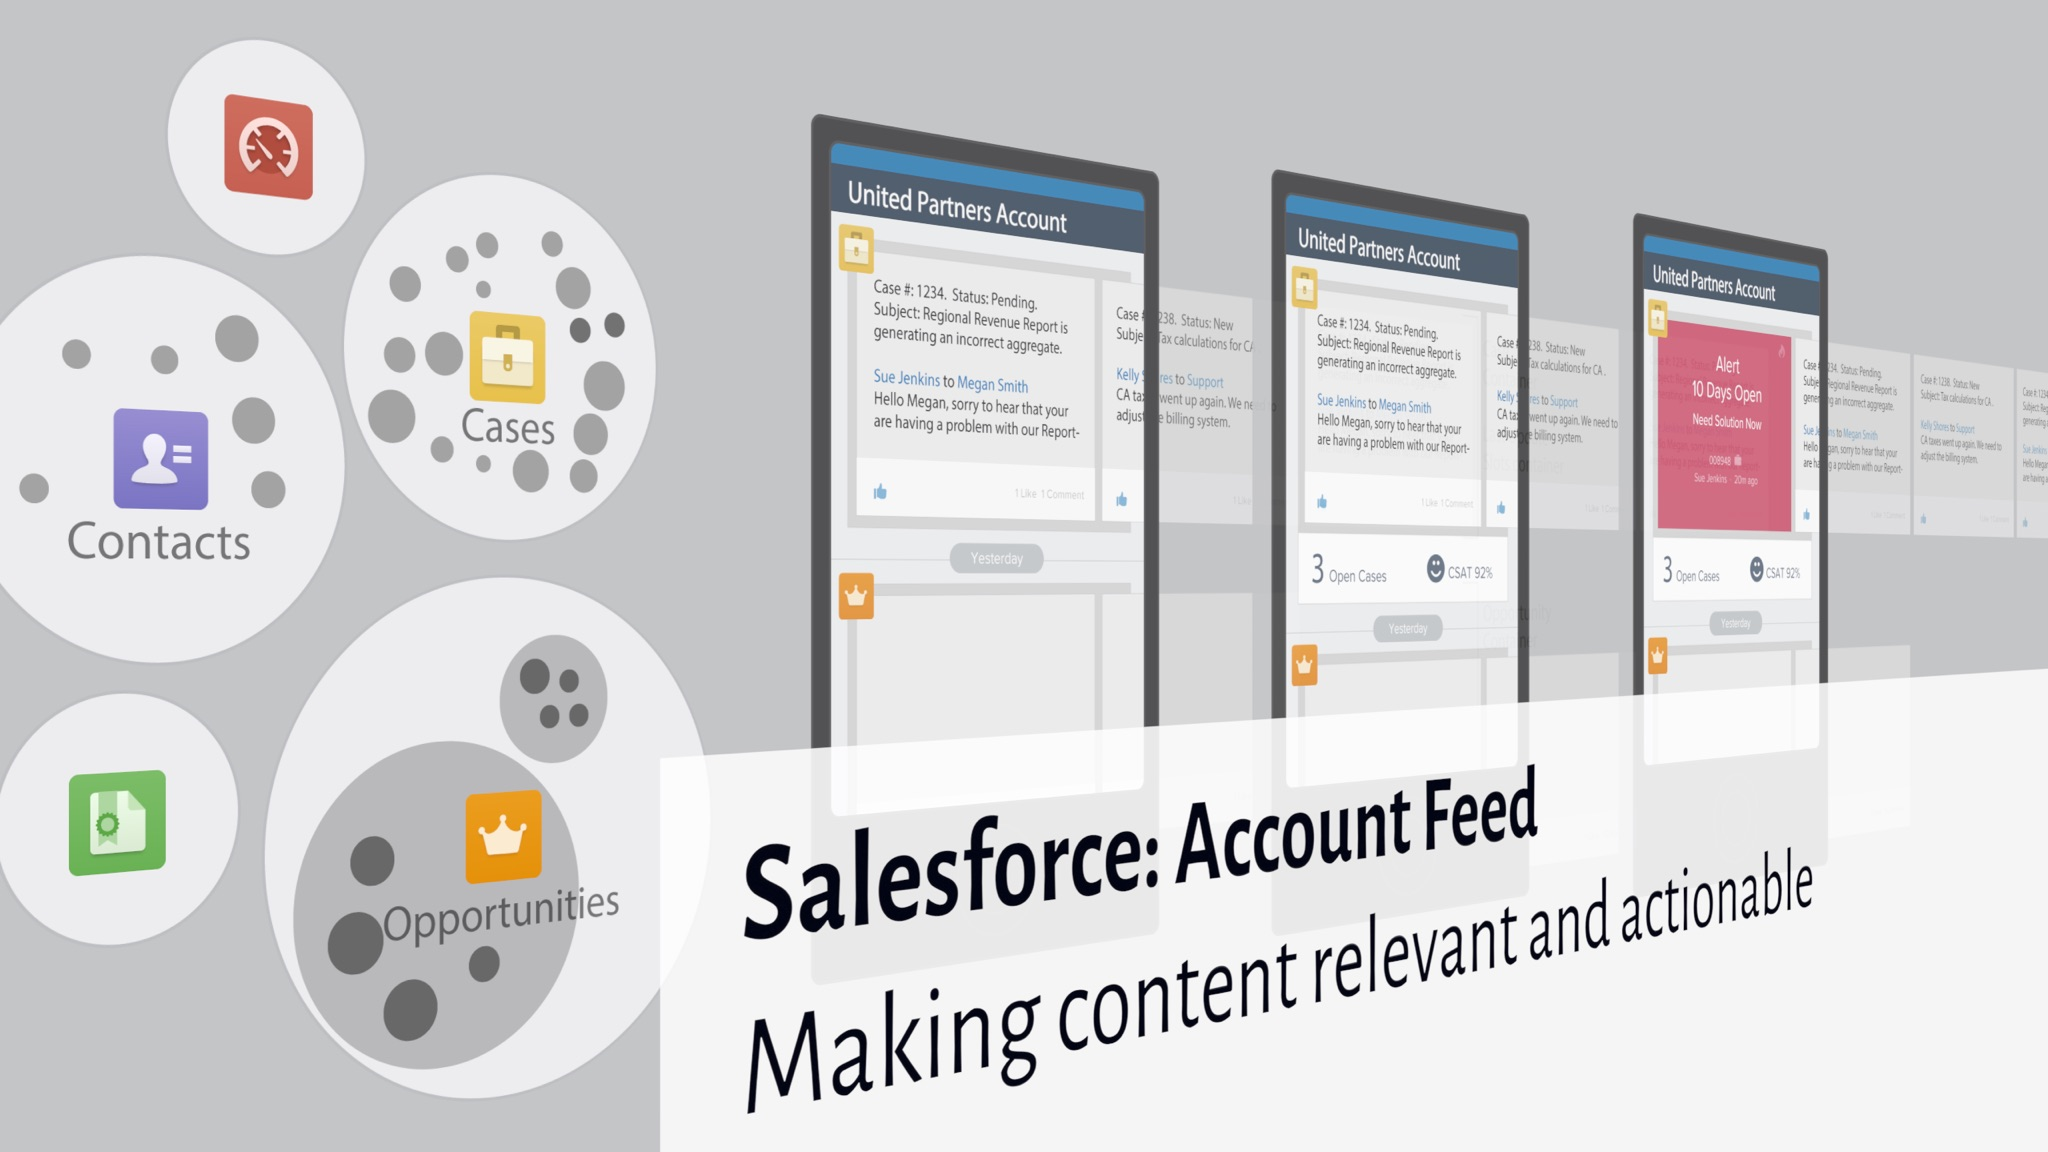 Salesforce mobile application showing the account feed design progression. The goal of the design is to make feed content relevant and actionable.